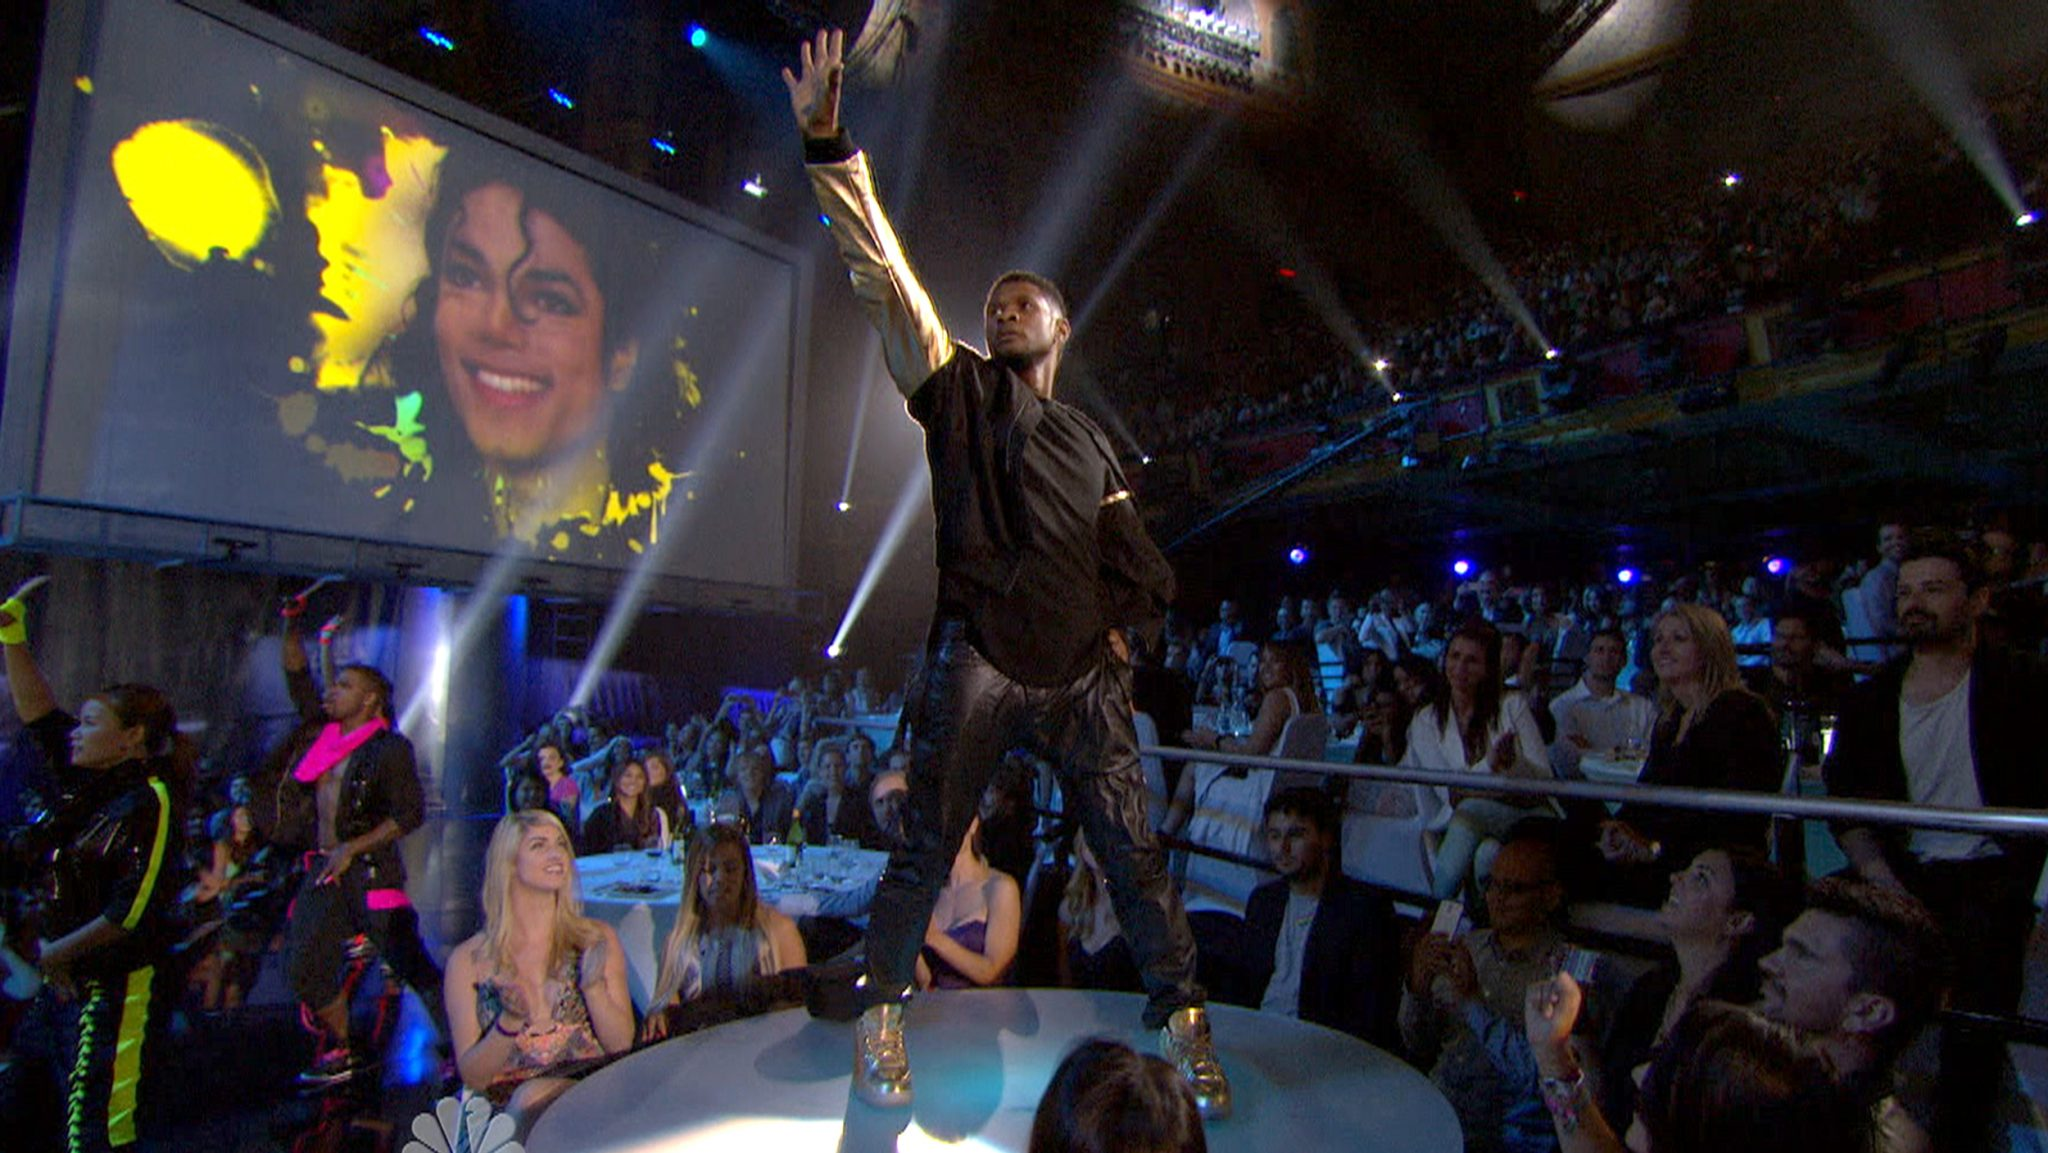 Usher's tribute performance to Michael Jackson